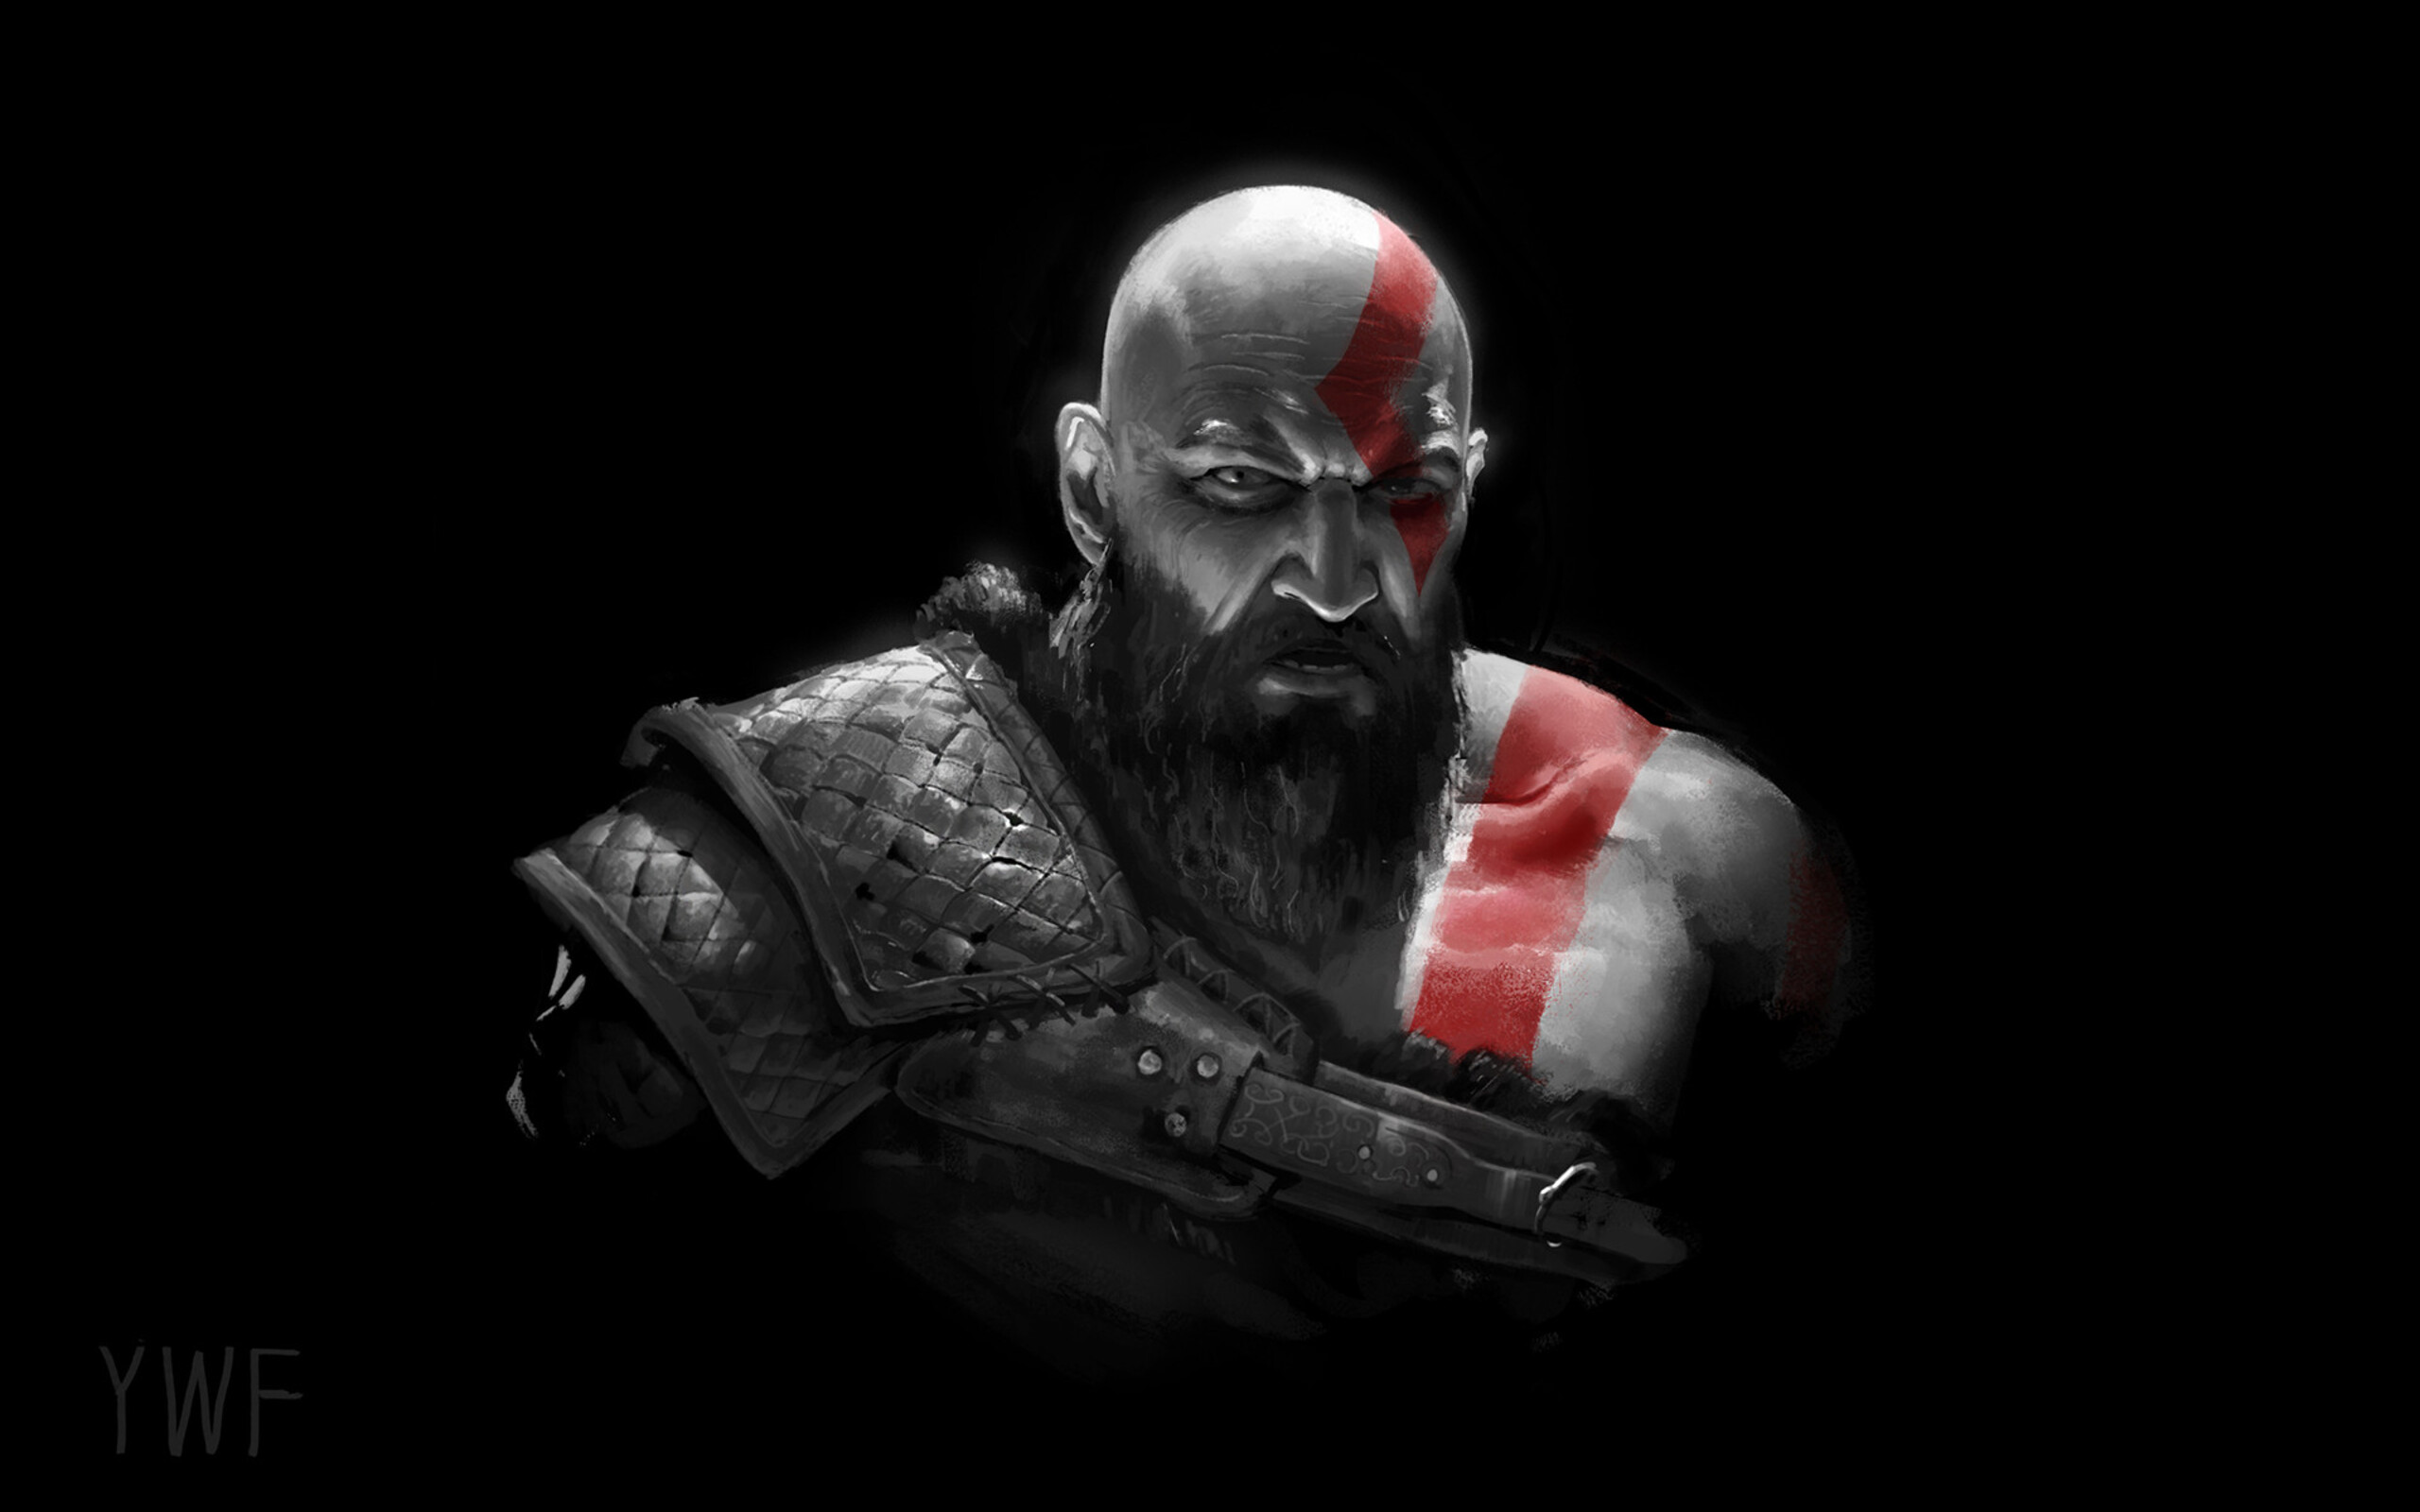 2560x1600 Kratos In God Of War 2018 2560x1600 Resolution Hd